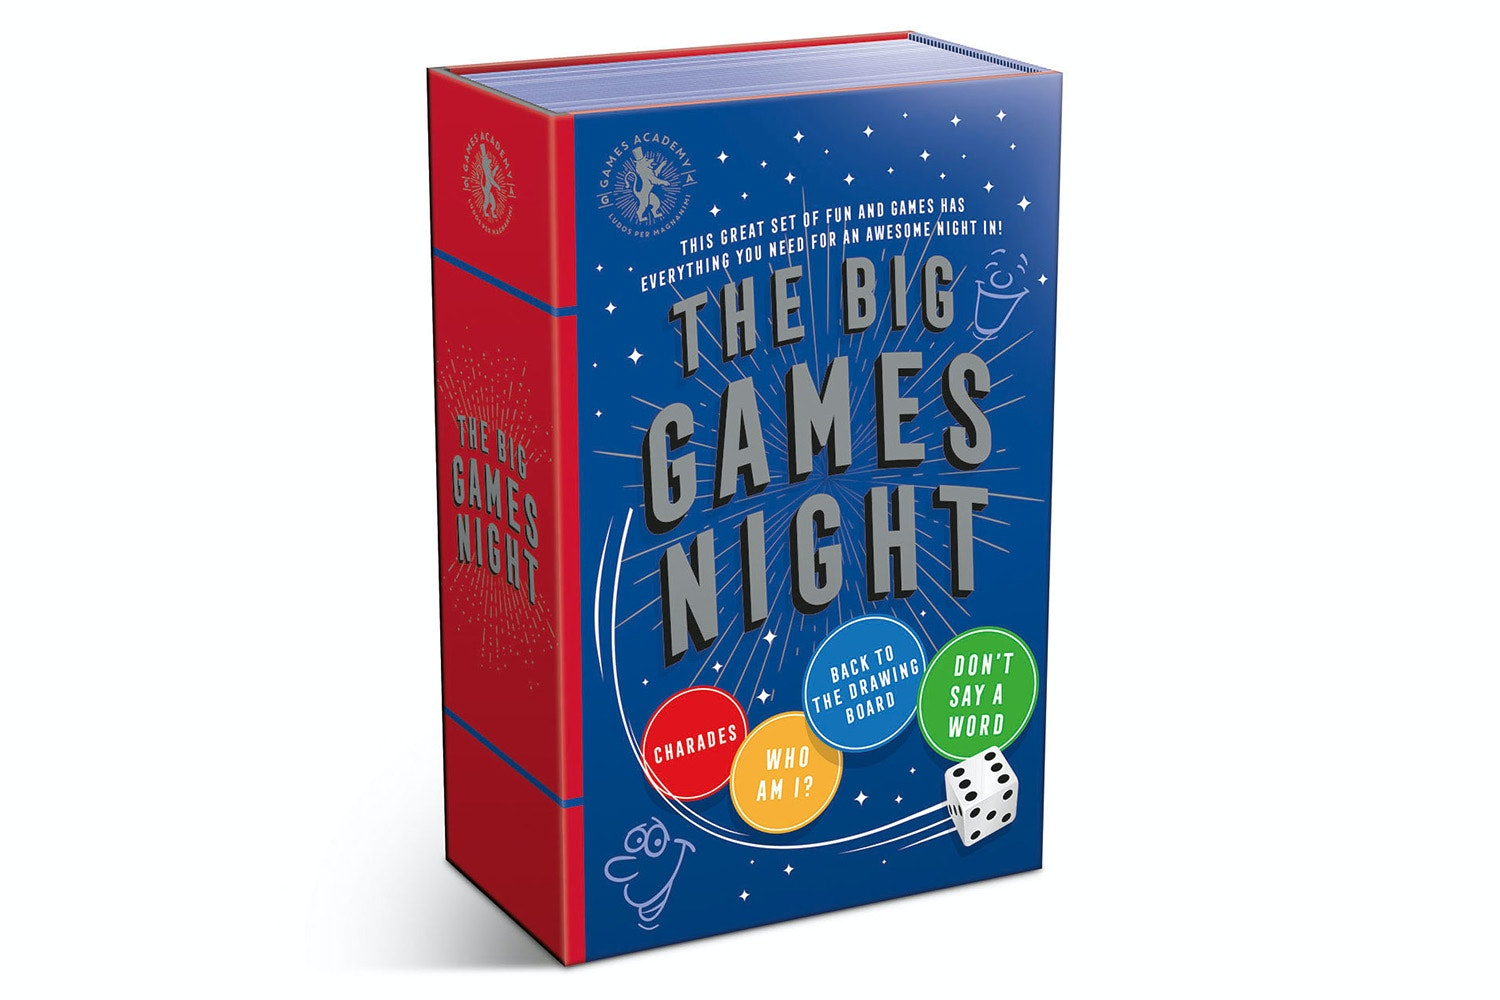 The Big Games Night | The great set of fun and games